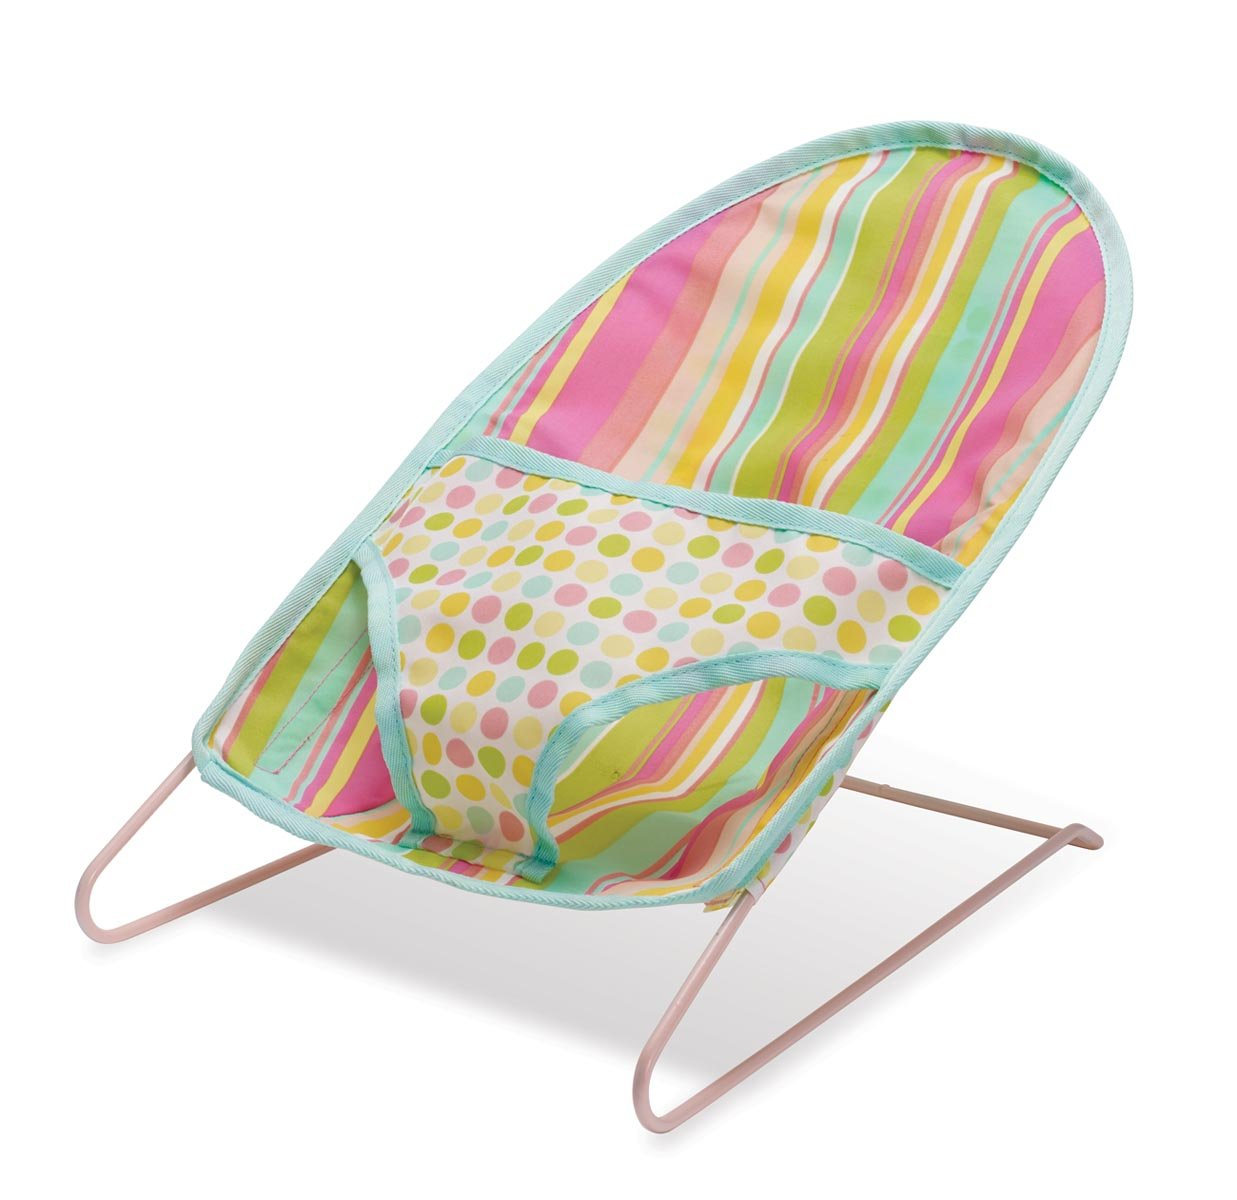 Bouncy chair baby - Amazon Com Manhattan Toy Baby Stella Bouncy Chair Nurturing Doll Accessory Toys Games